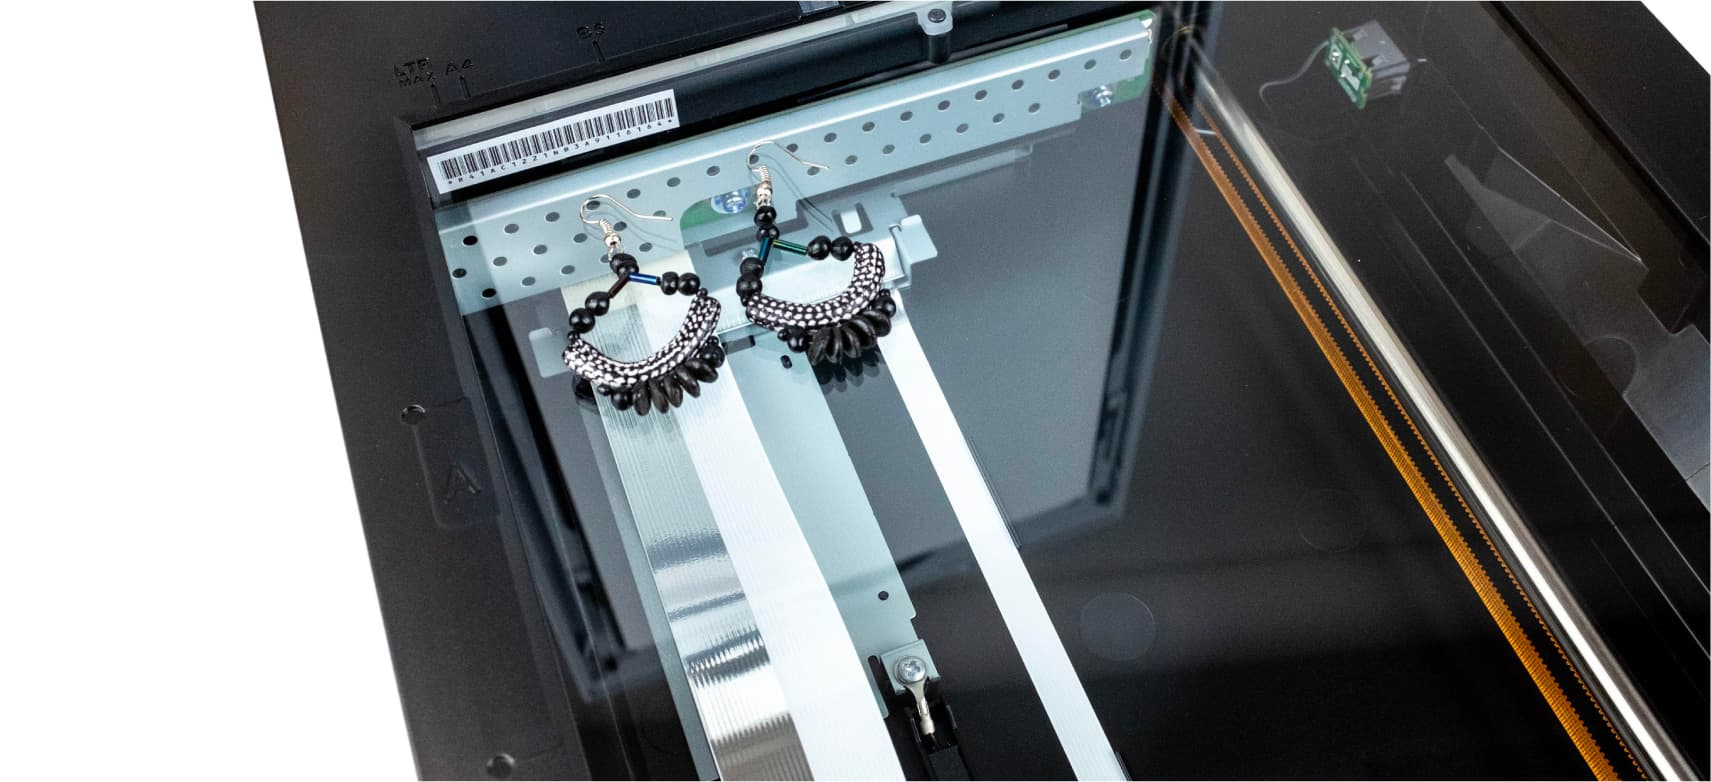 Earrings placed on scanner bed